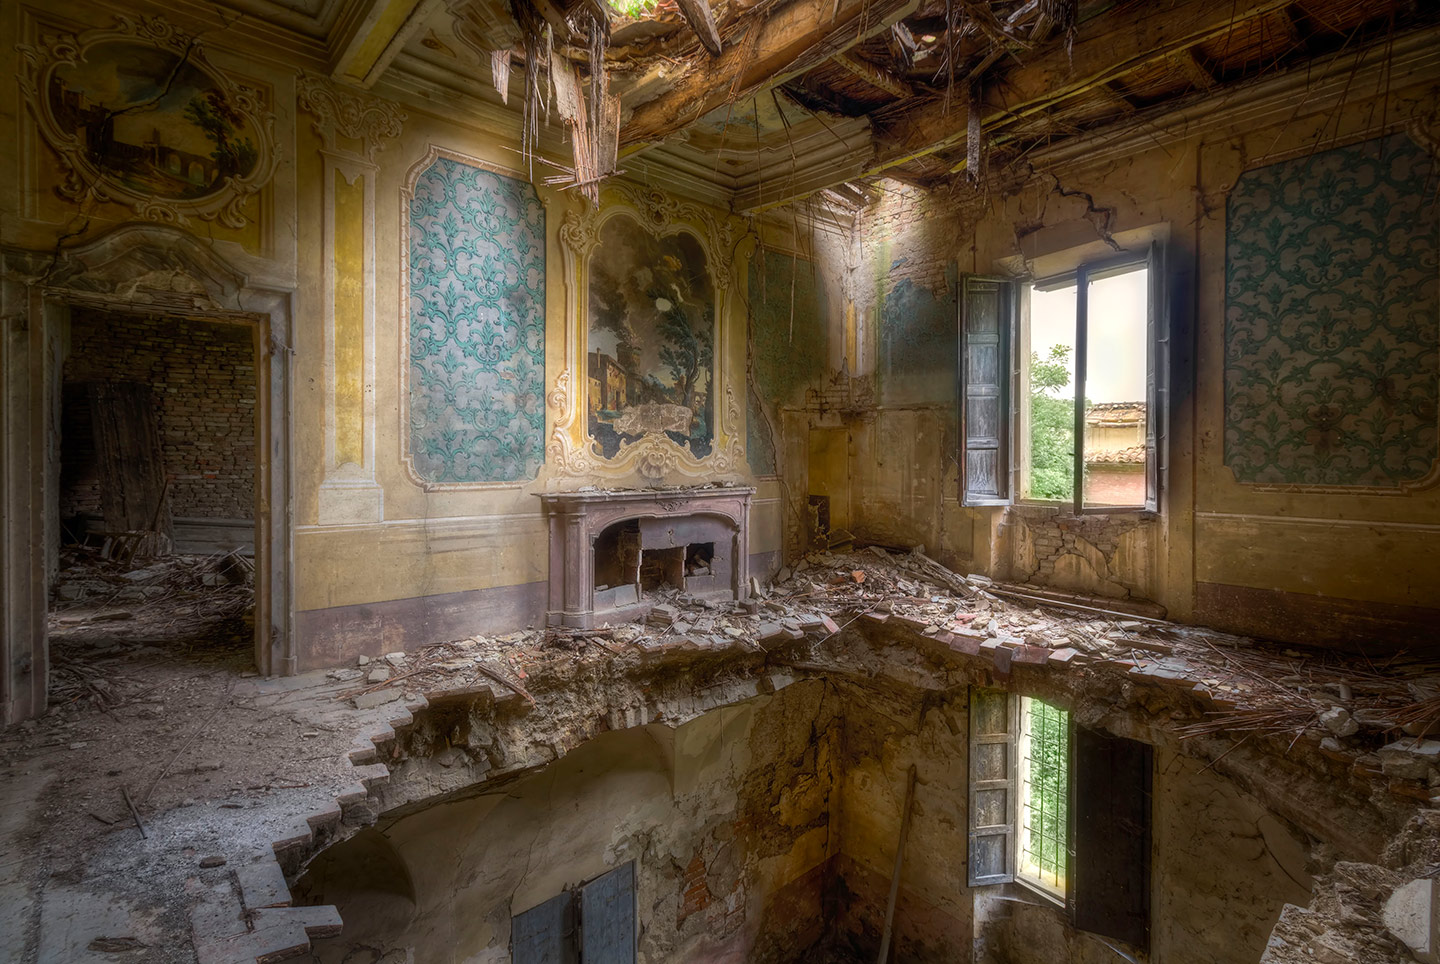 Abandoned Building Photos in Italy